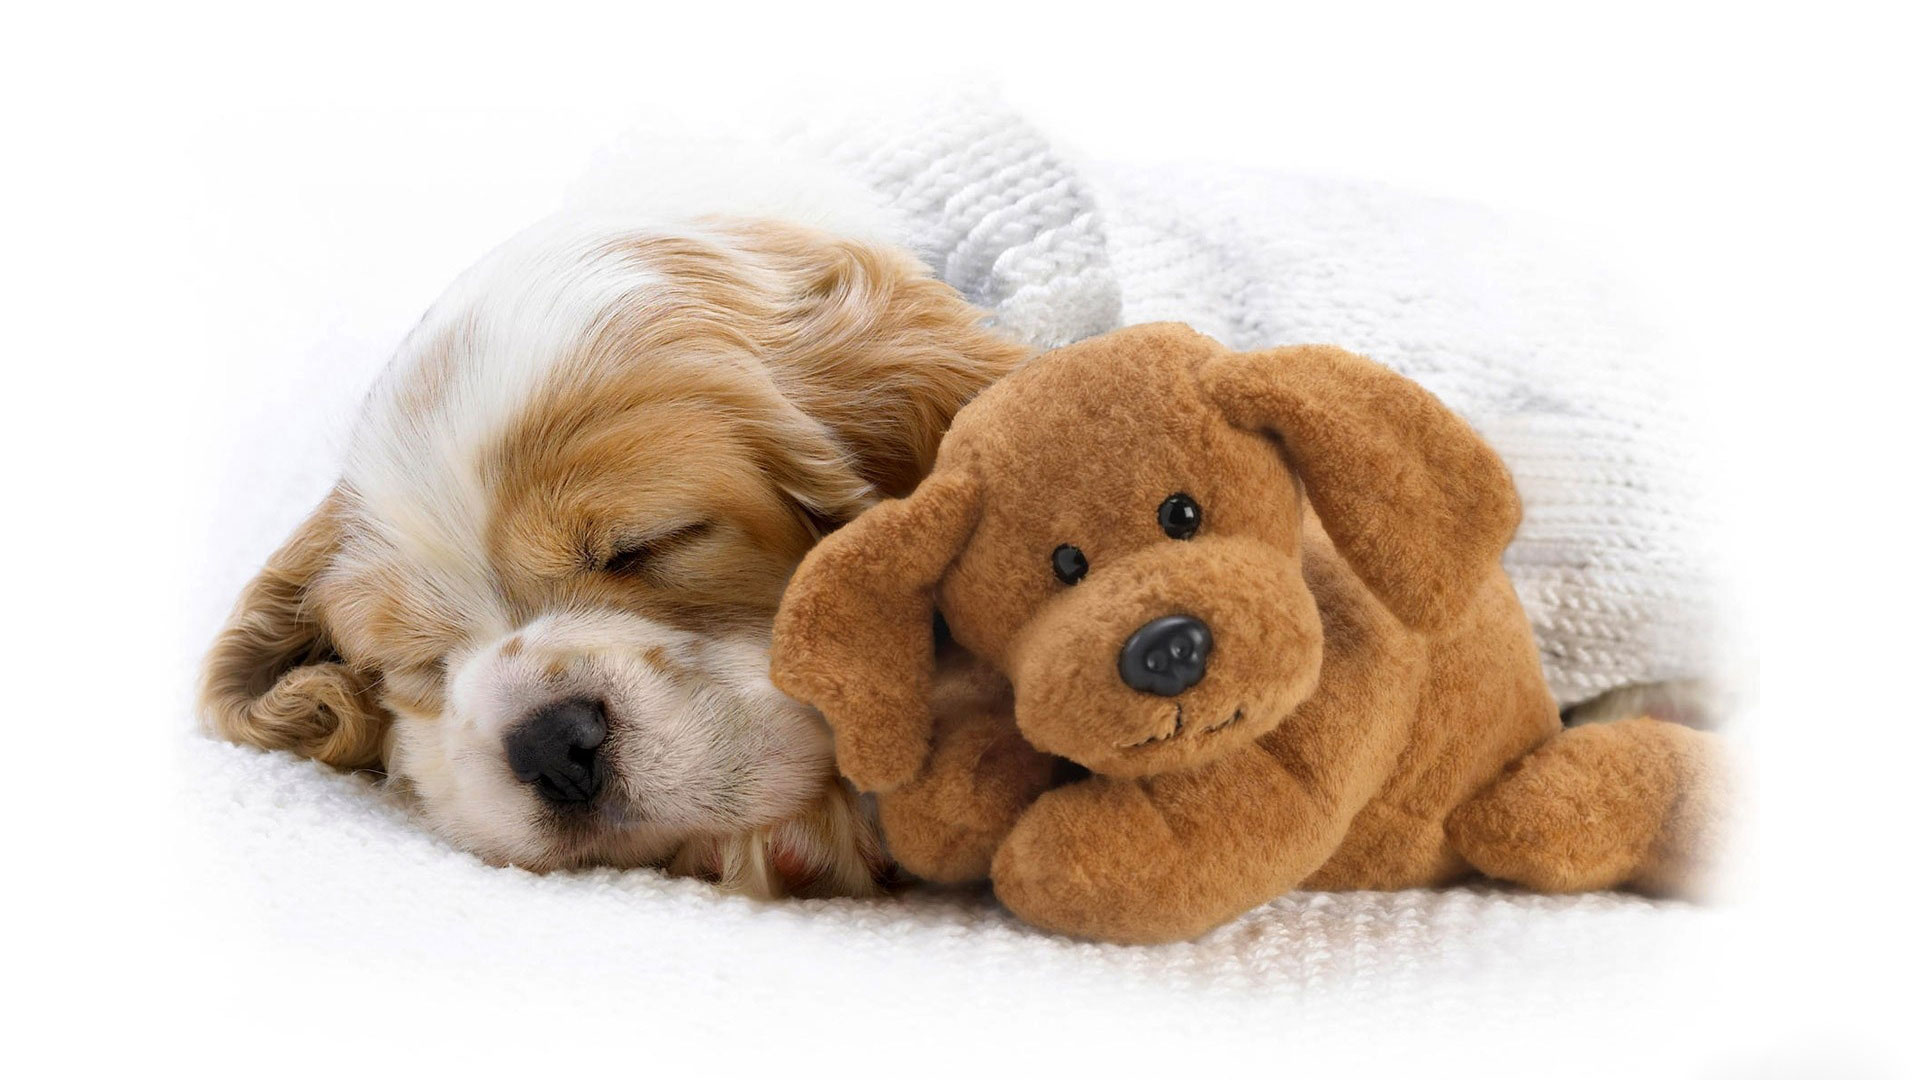 1920x1080px free puppy screensavers and wallpaper - wallpapersafari